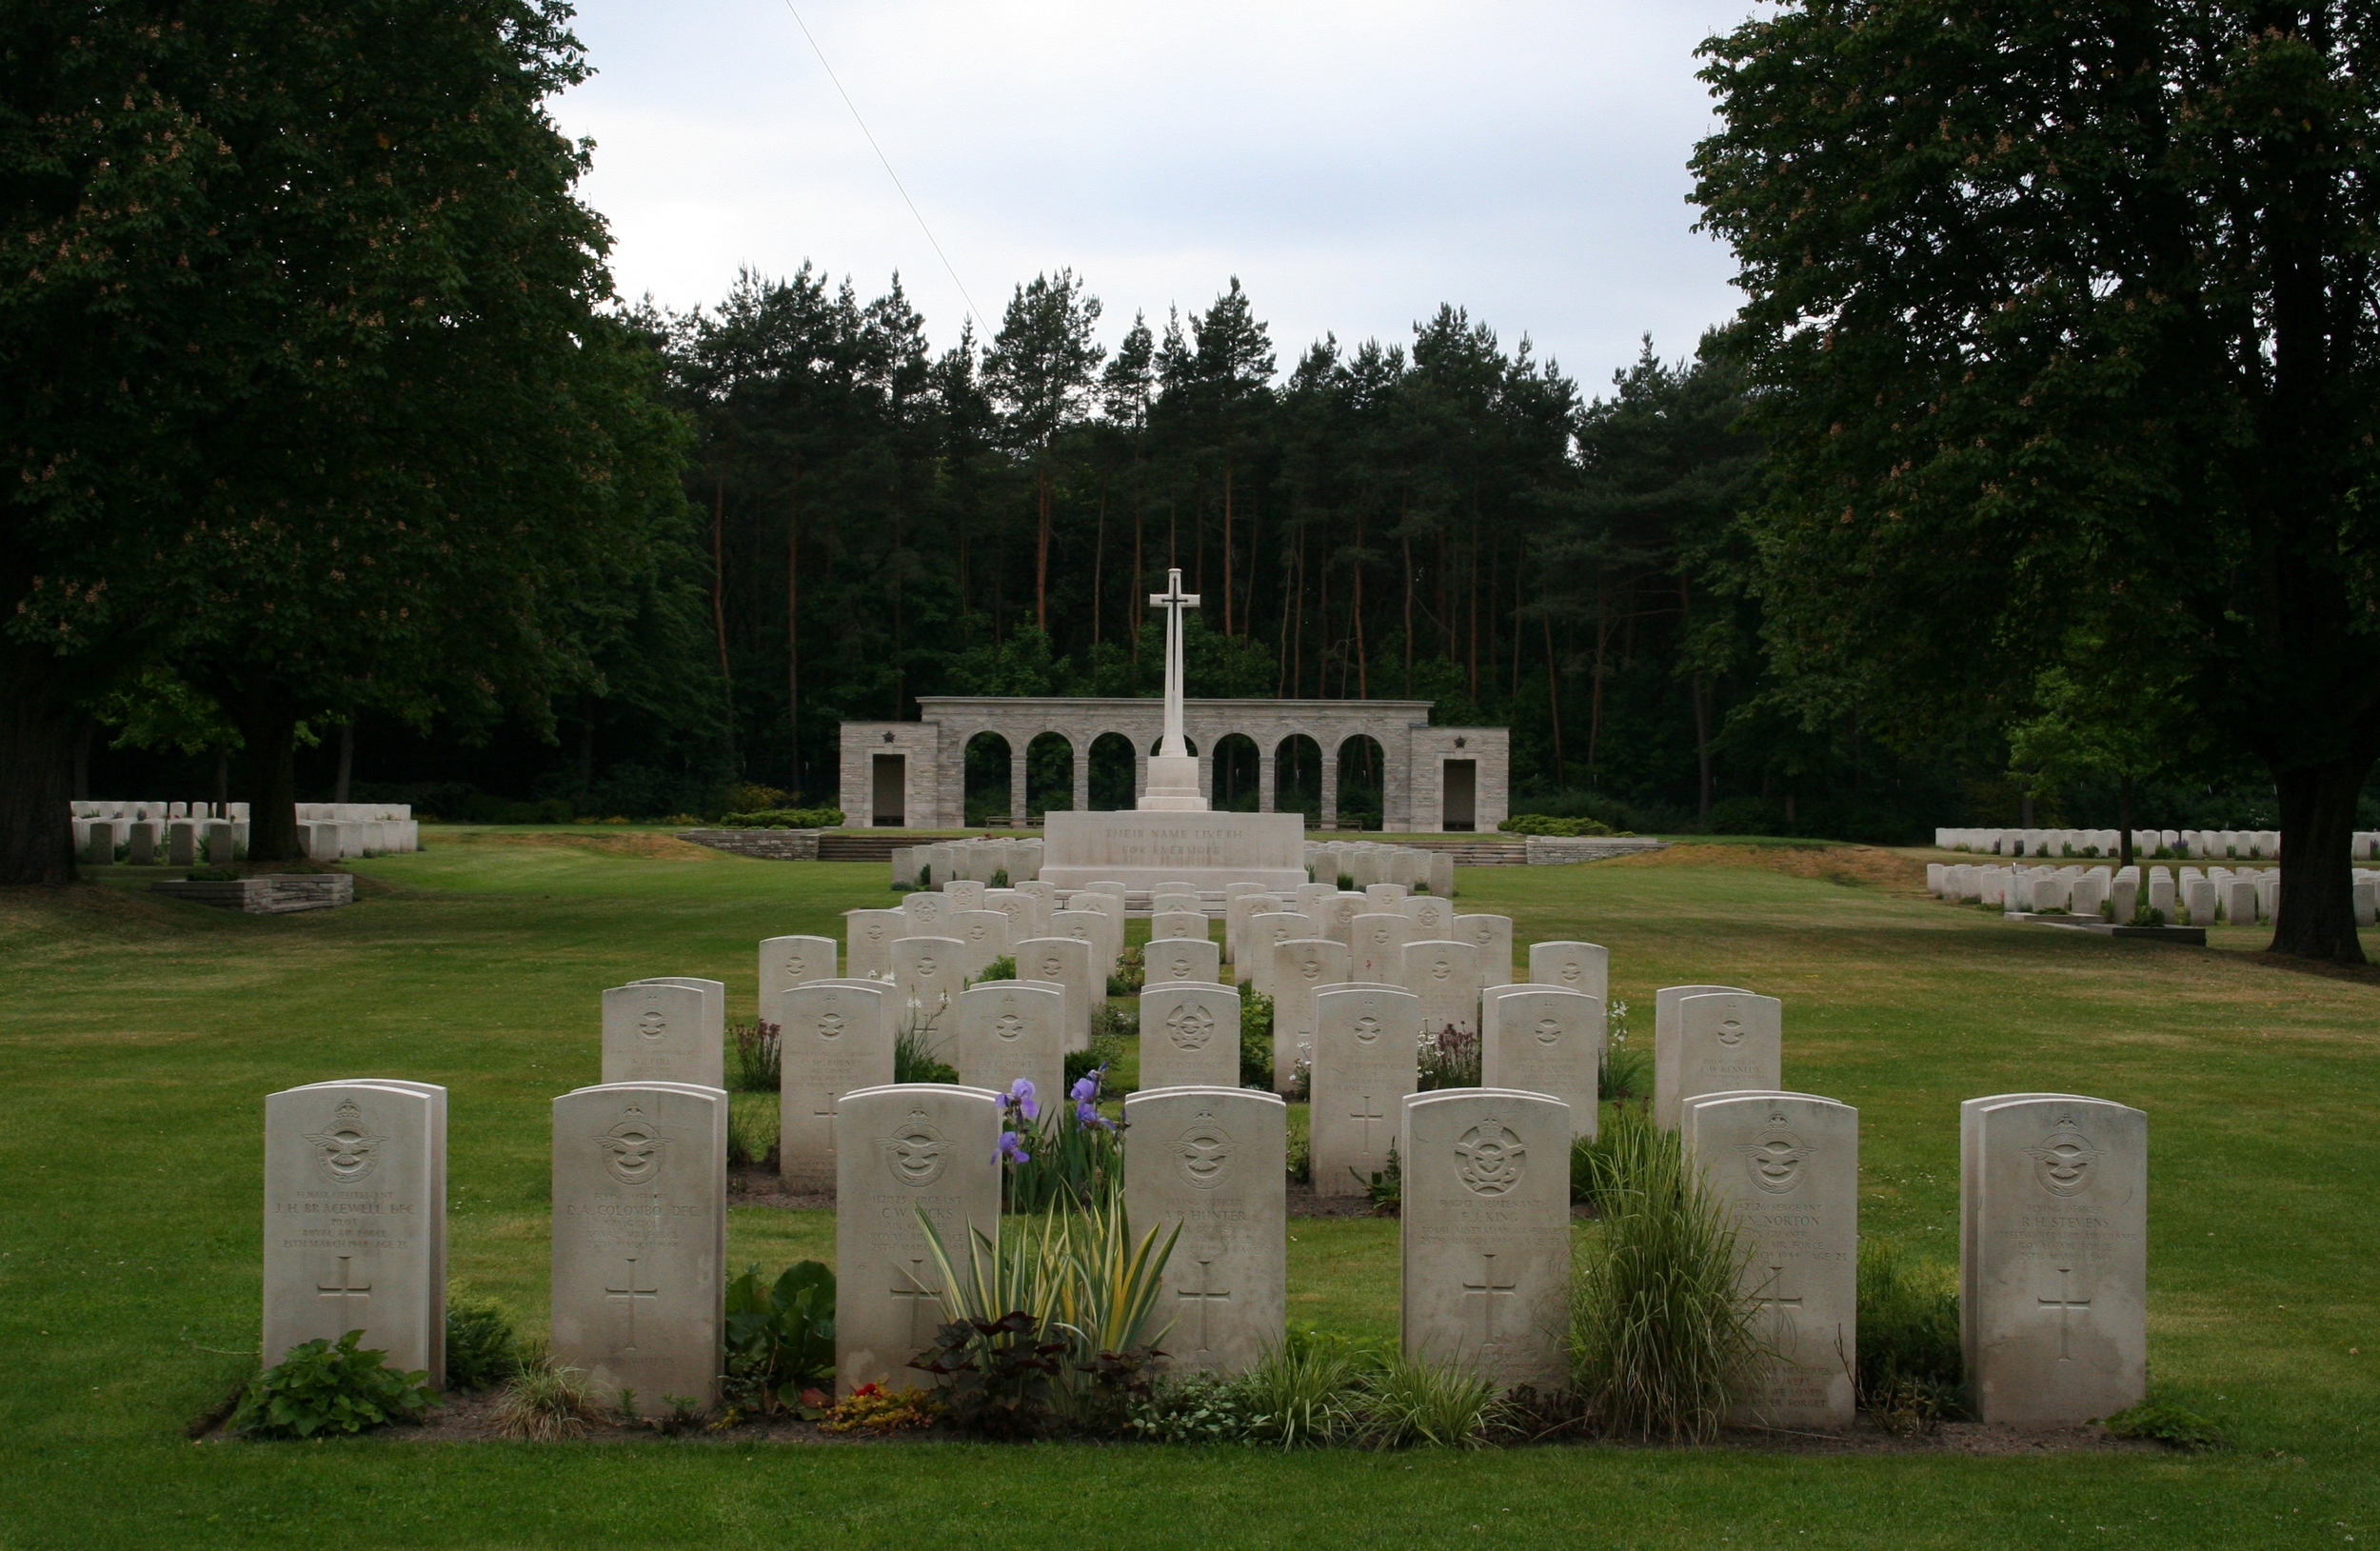 1939 - 1945 Commonwealth War Graves Cemetery, Berlin